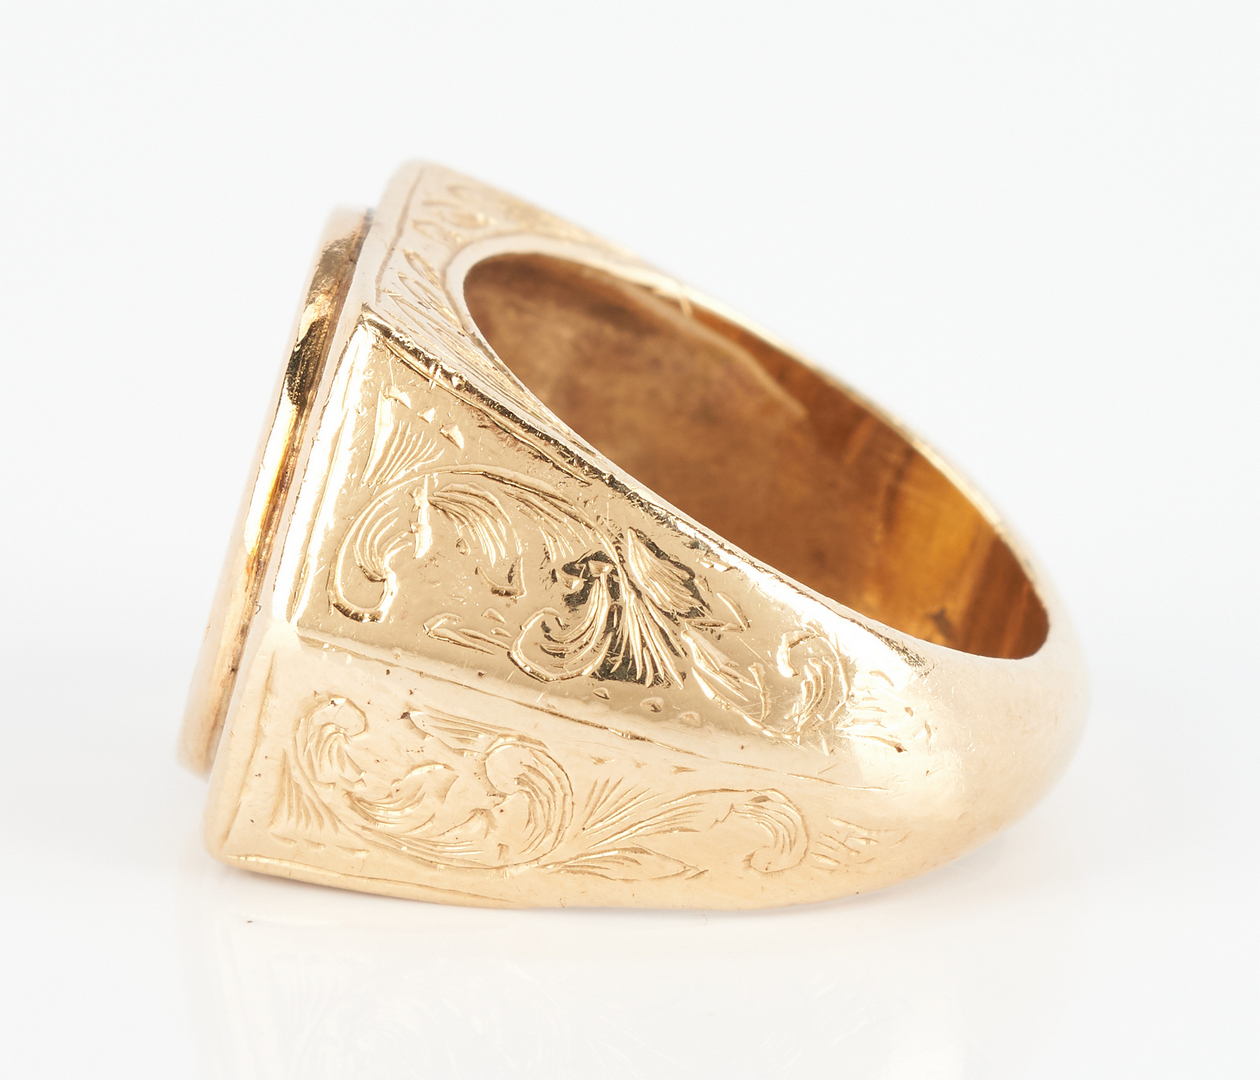 Lot 930: 14K Gold and $1 Gold Coin Ring